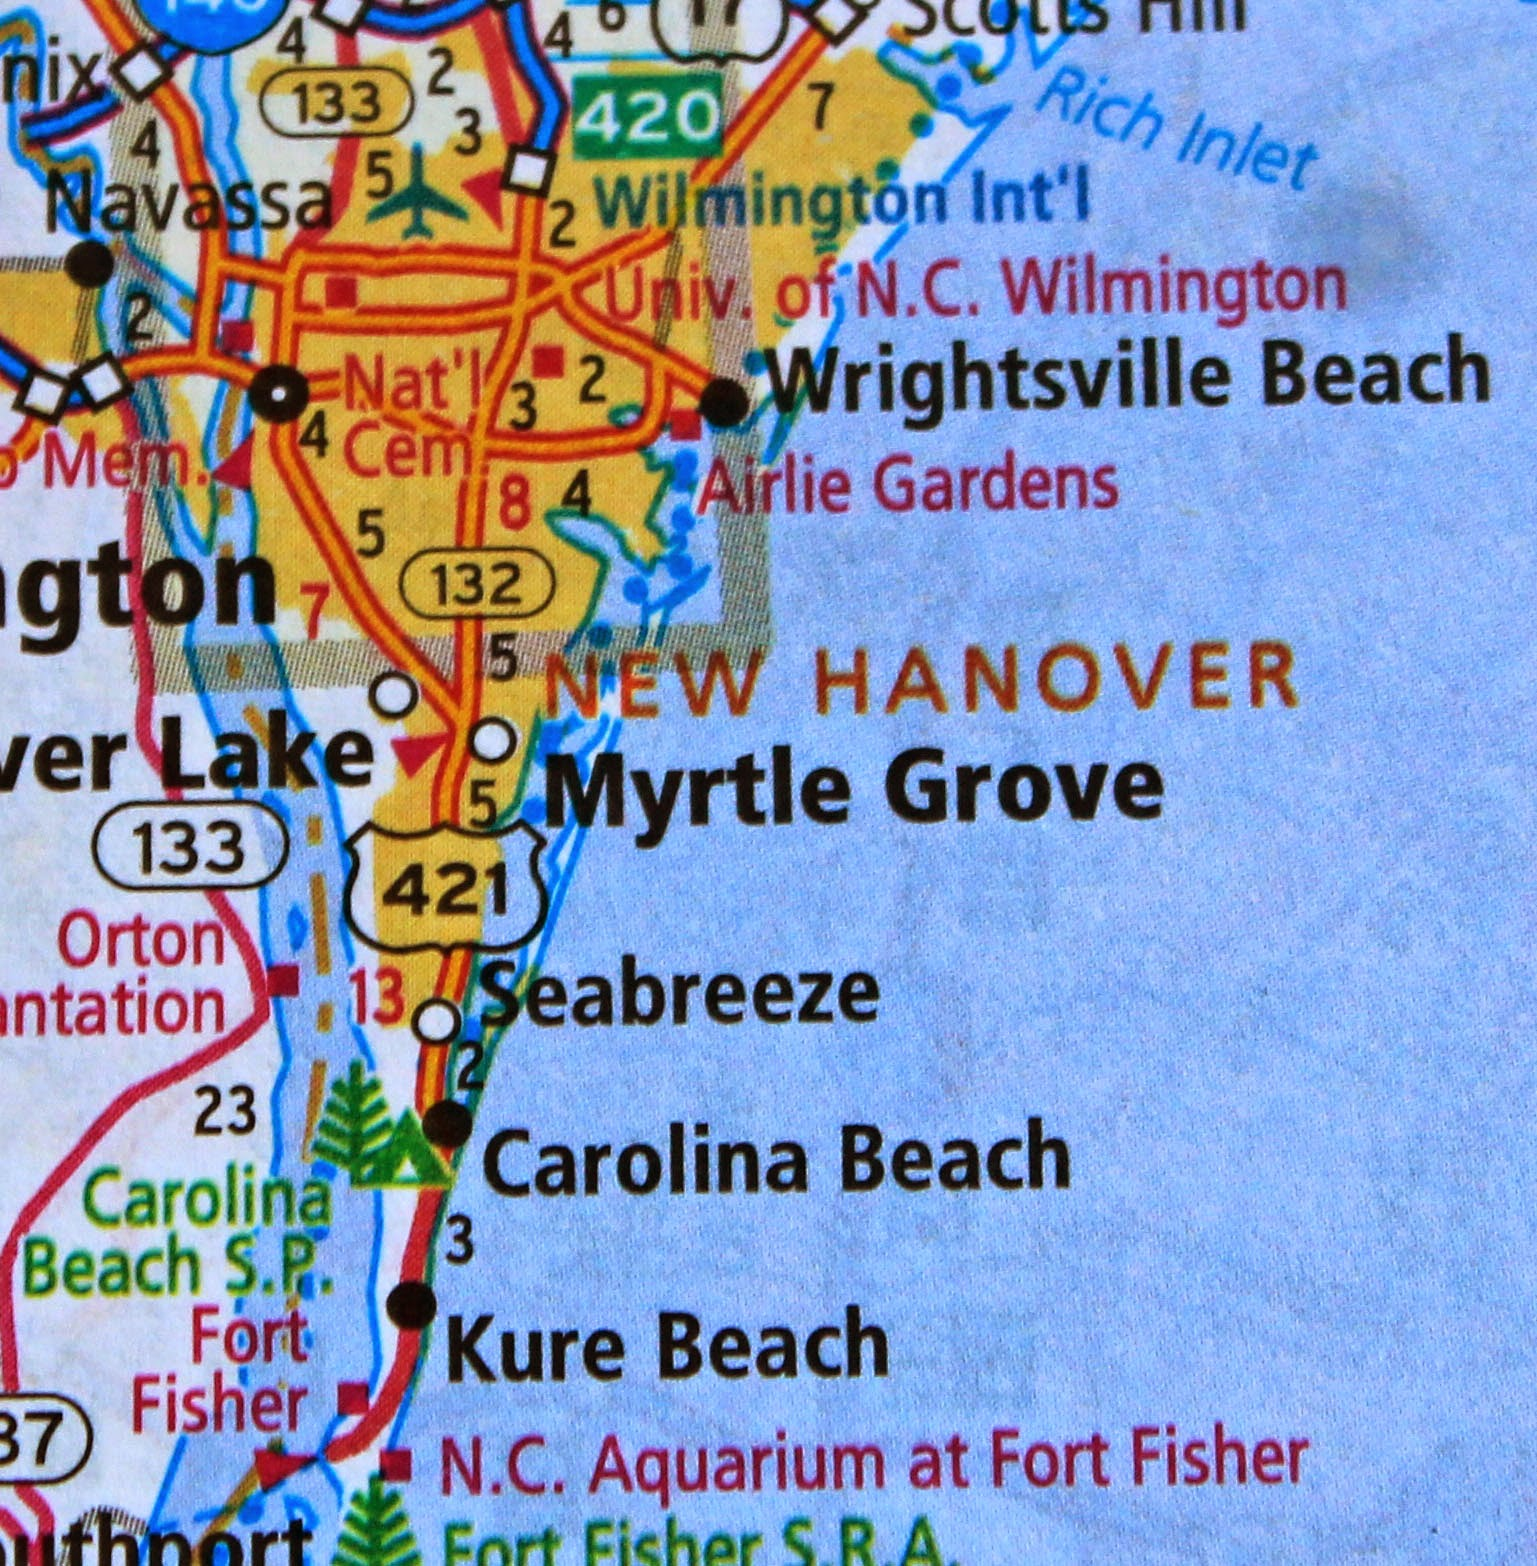 Nc Fort Fisher North Carolina Aquarium Kure Beach And Wrightsville